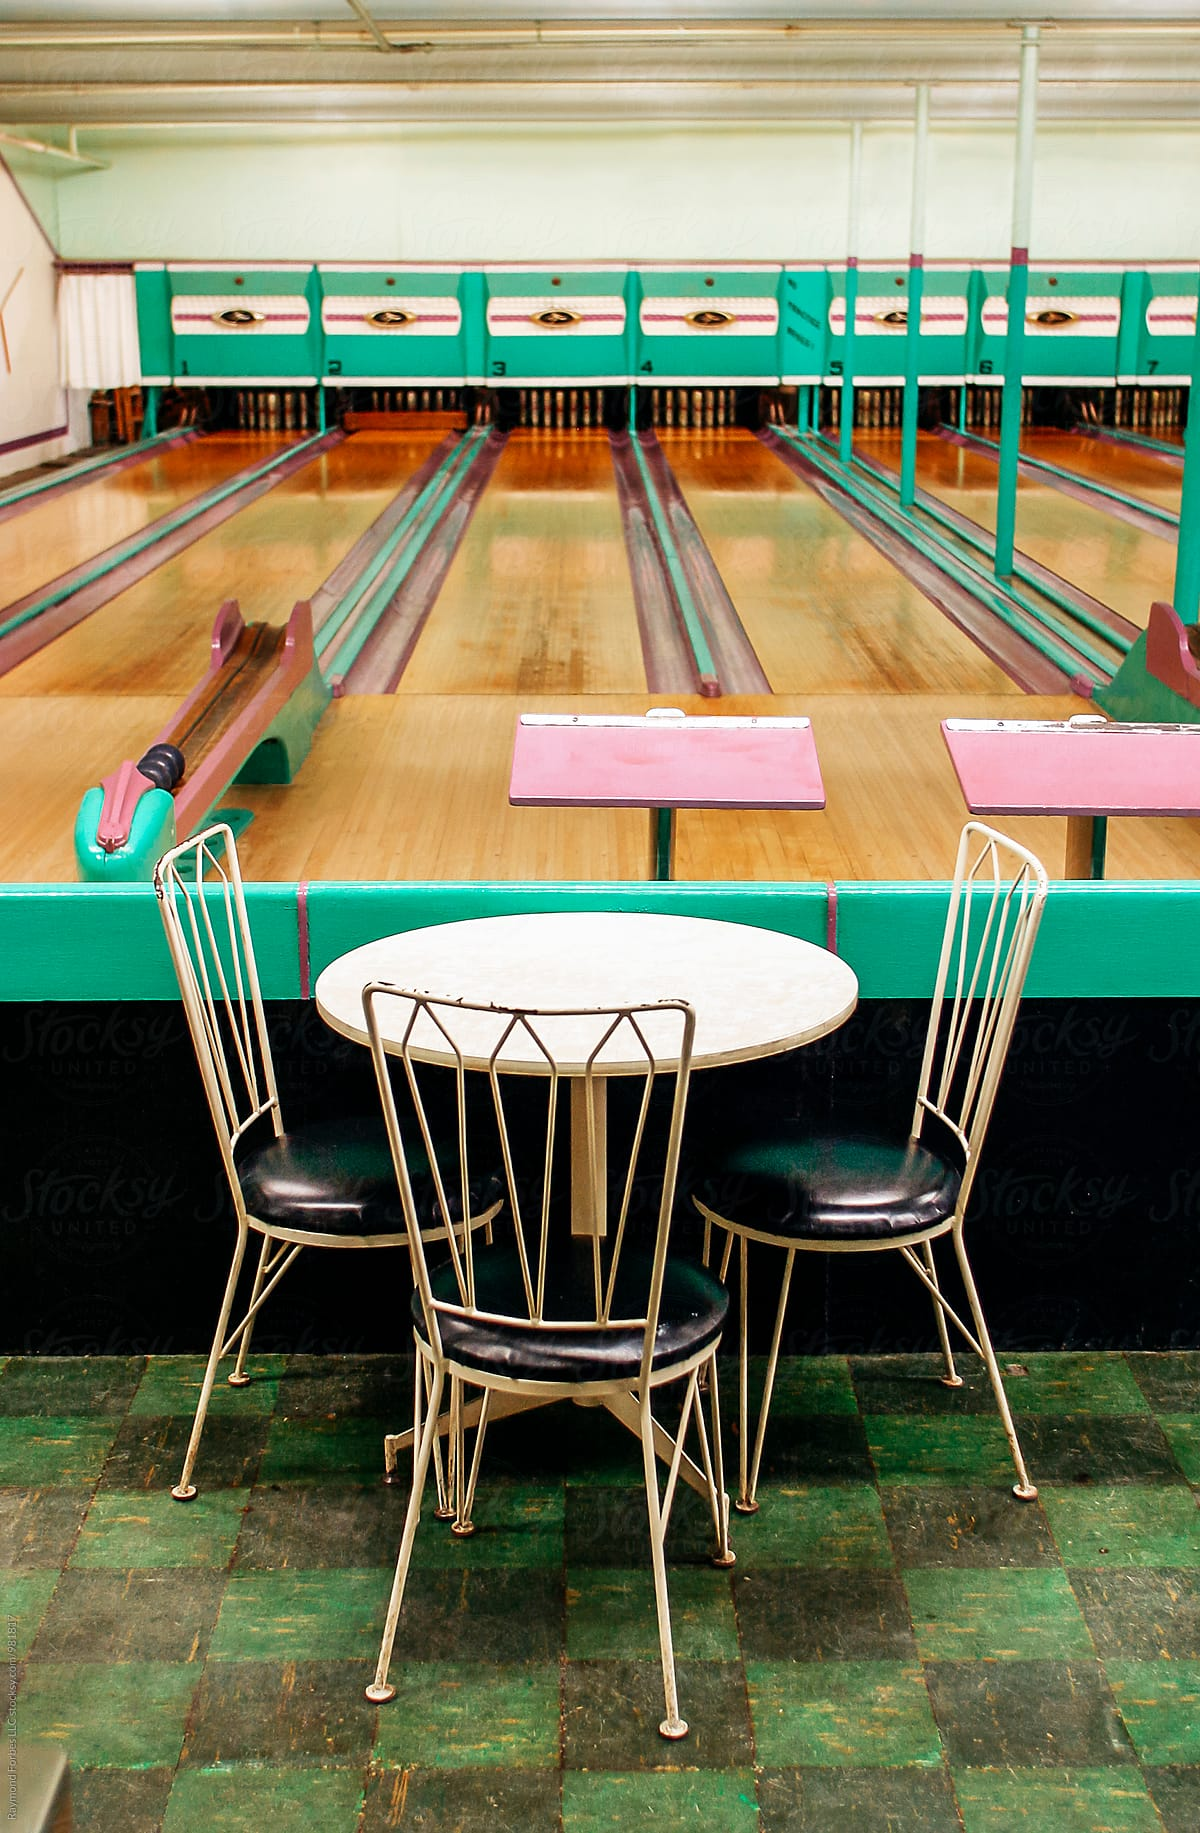 Vintage Candlepin Bowling Alley Stocksy United By Raymond Forbes Photography Stockphoto Stockph Candlepin Bowling Mid Century Wall Art Los Angeles Wall Art